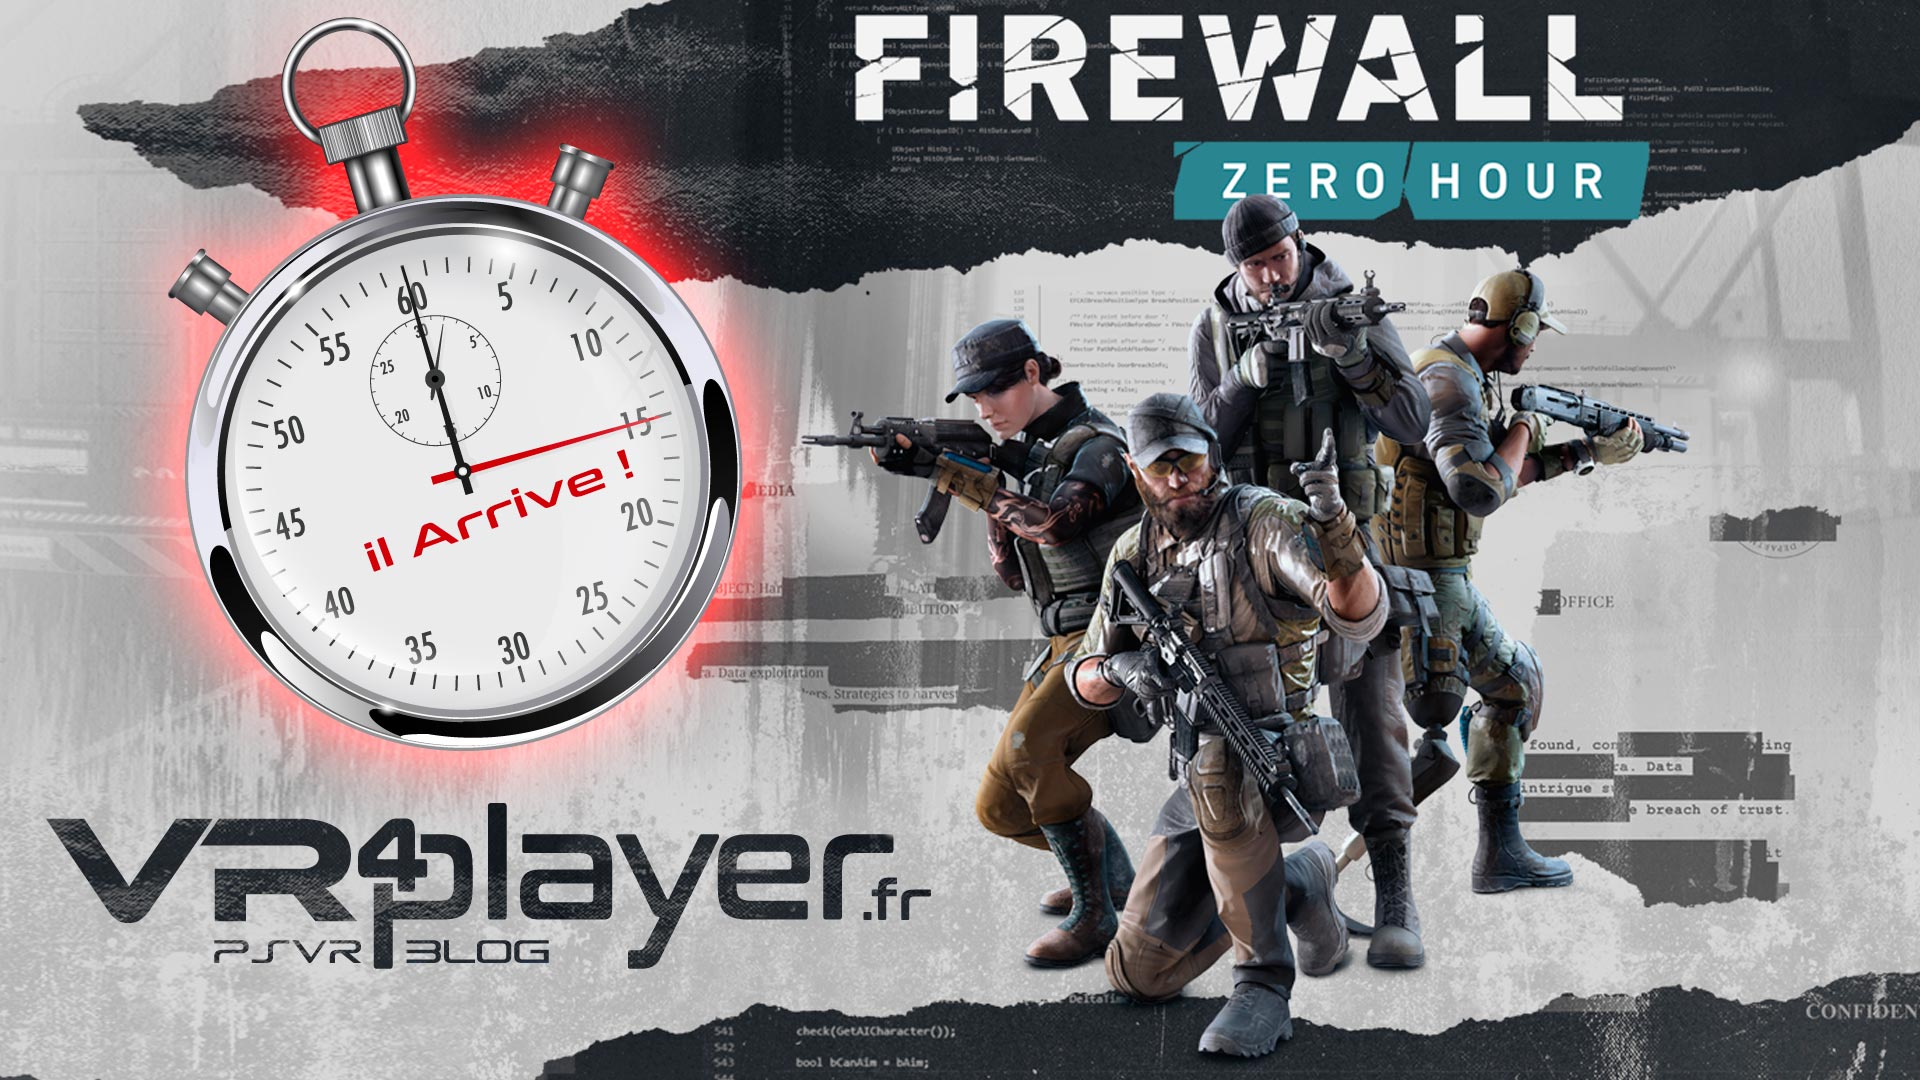 FireWall Zero Hour VR4player